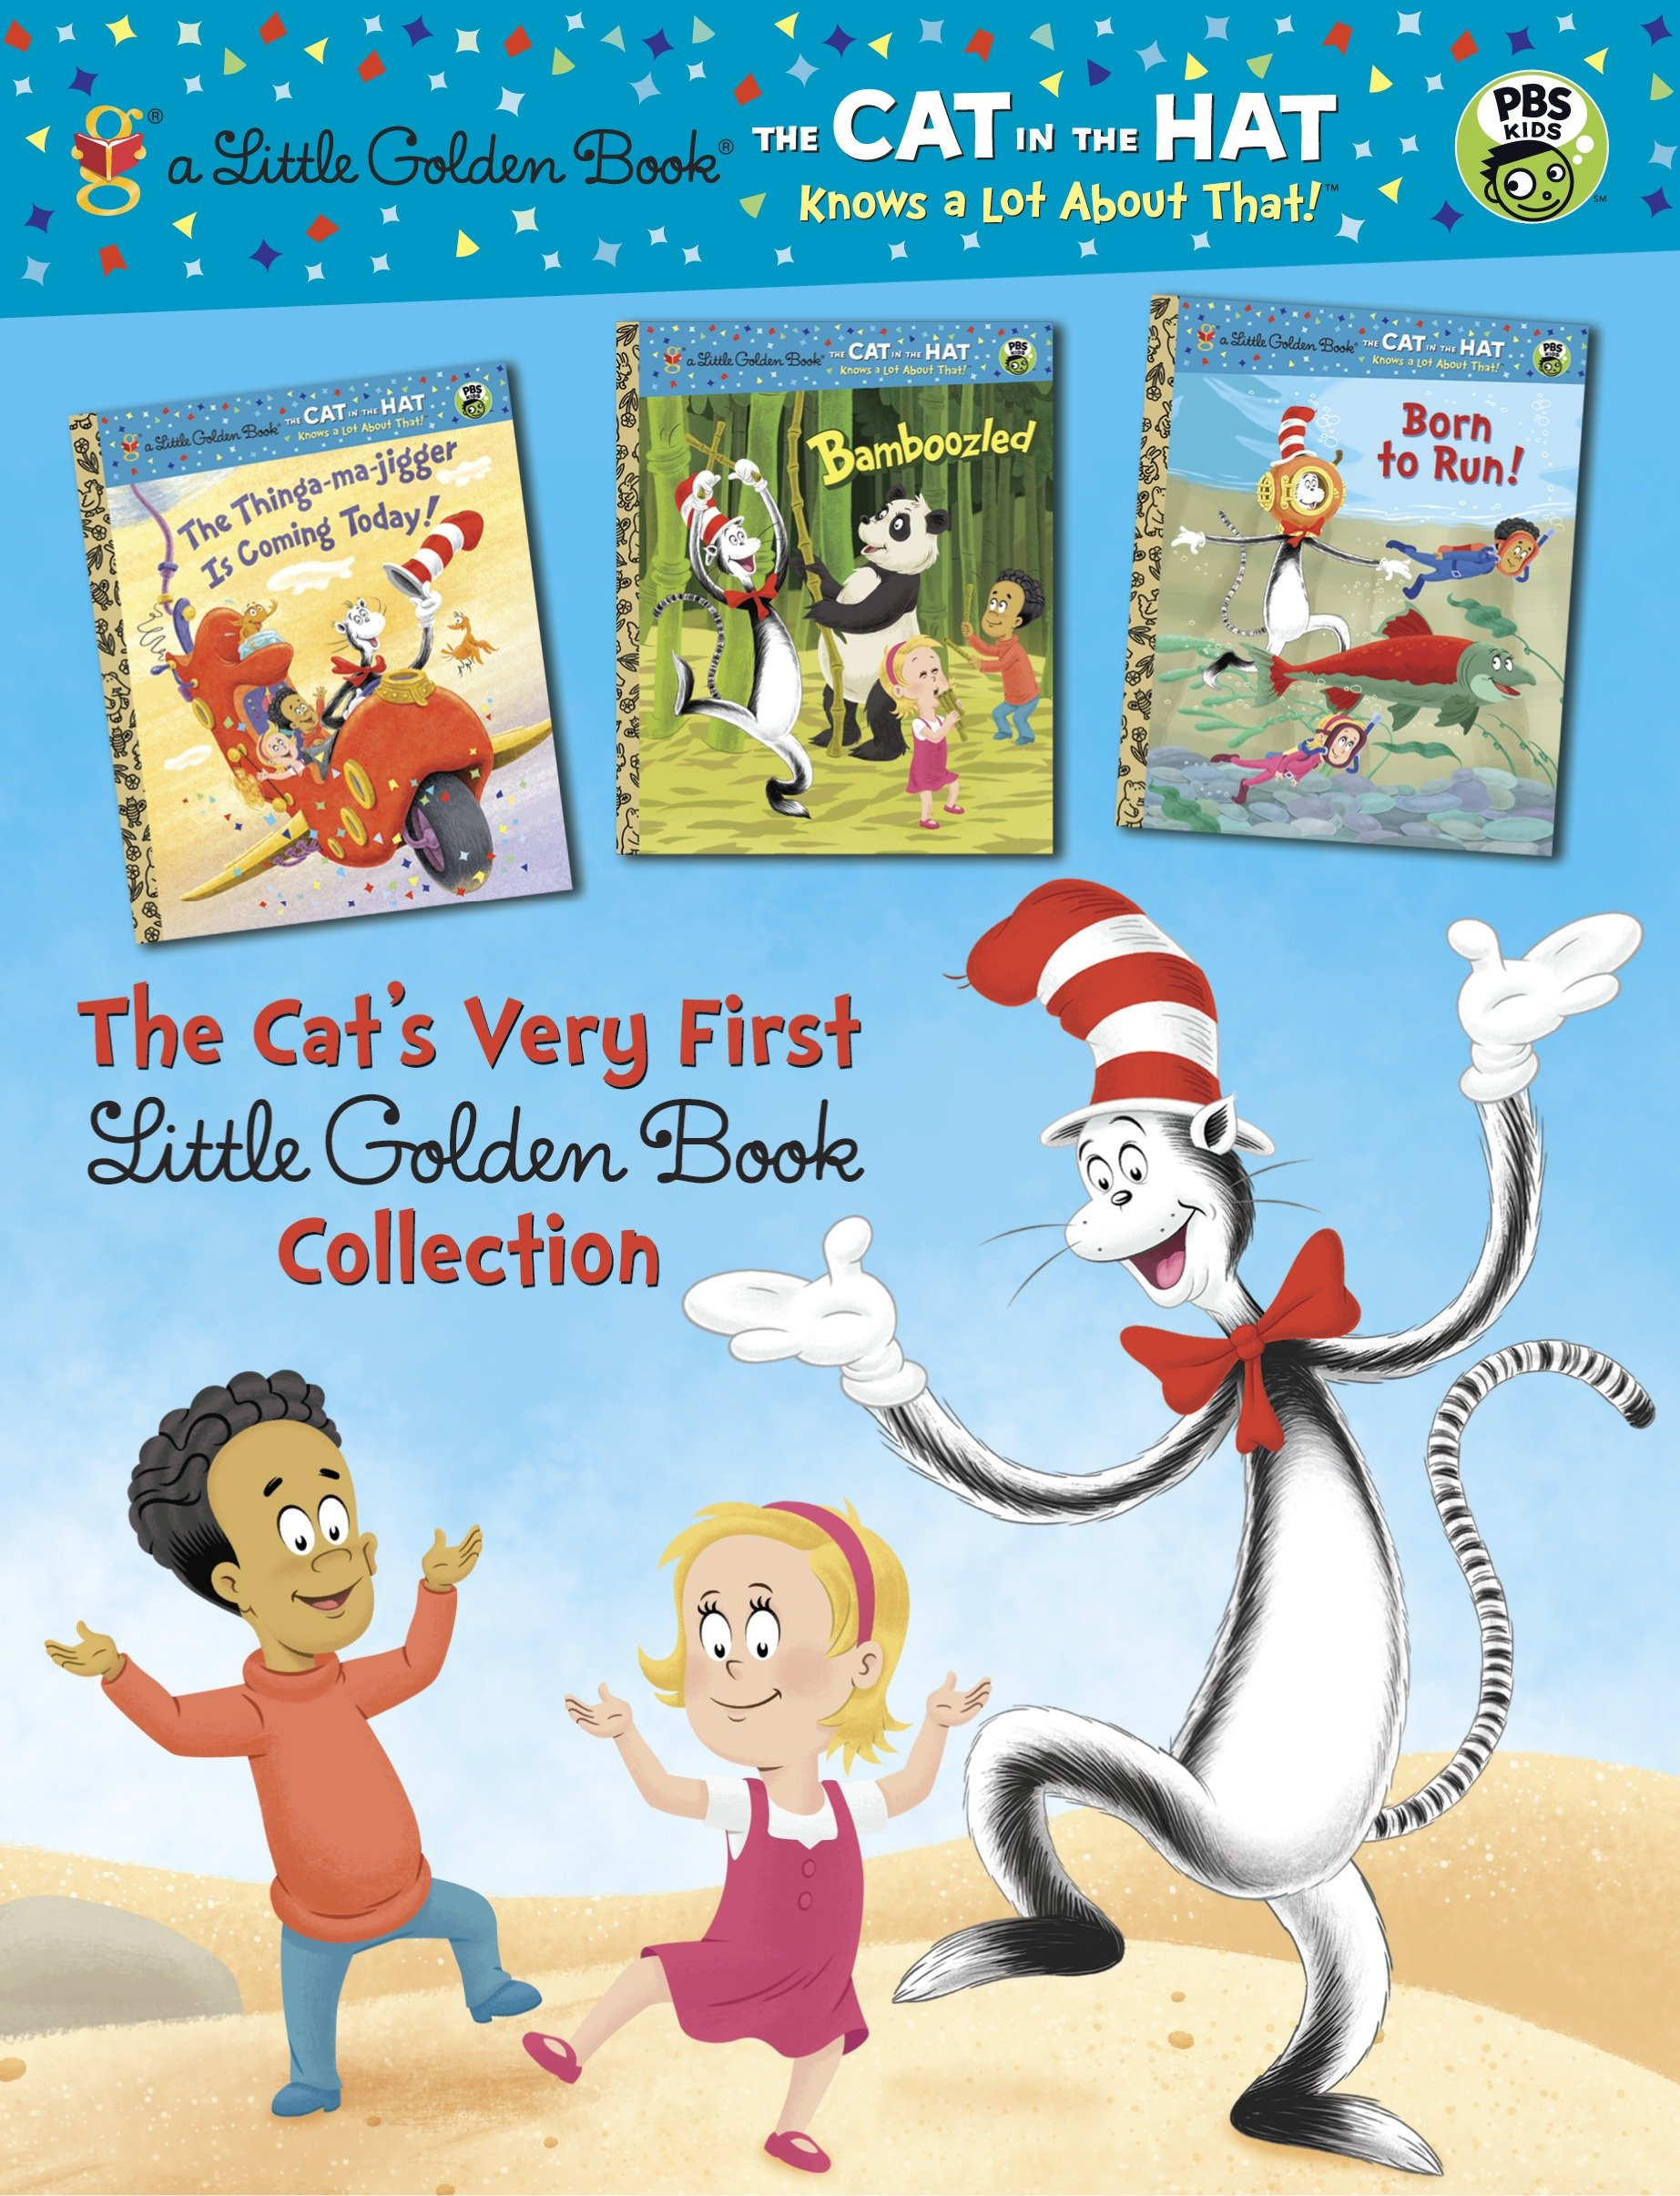 Cover Image of The Cat's Very First Little Golden Book Collection (Dr. Seuss/Cat in the Hat)